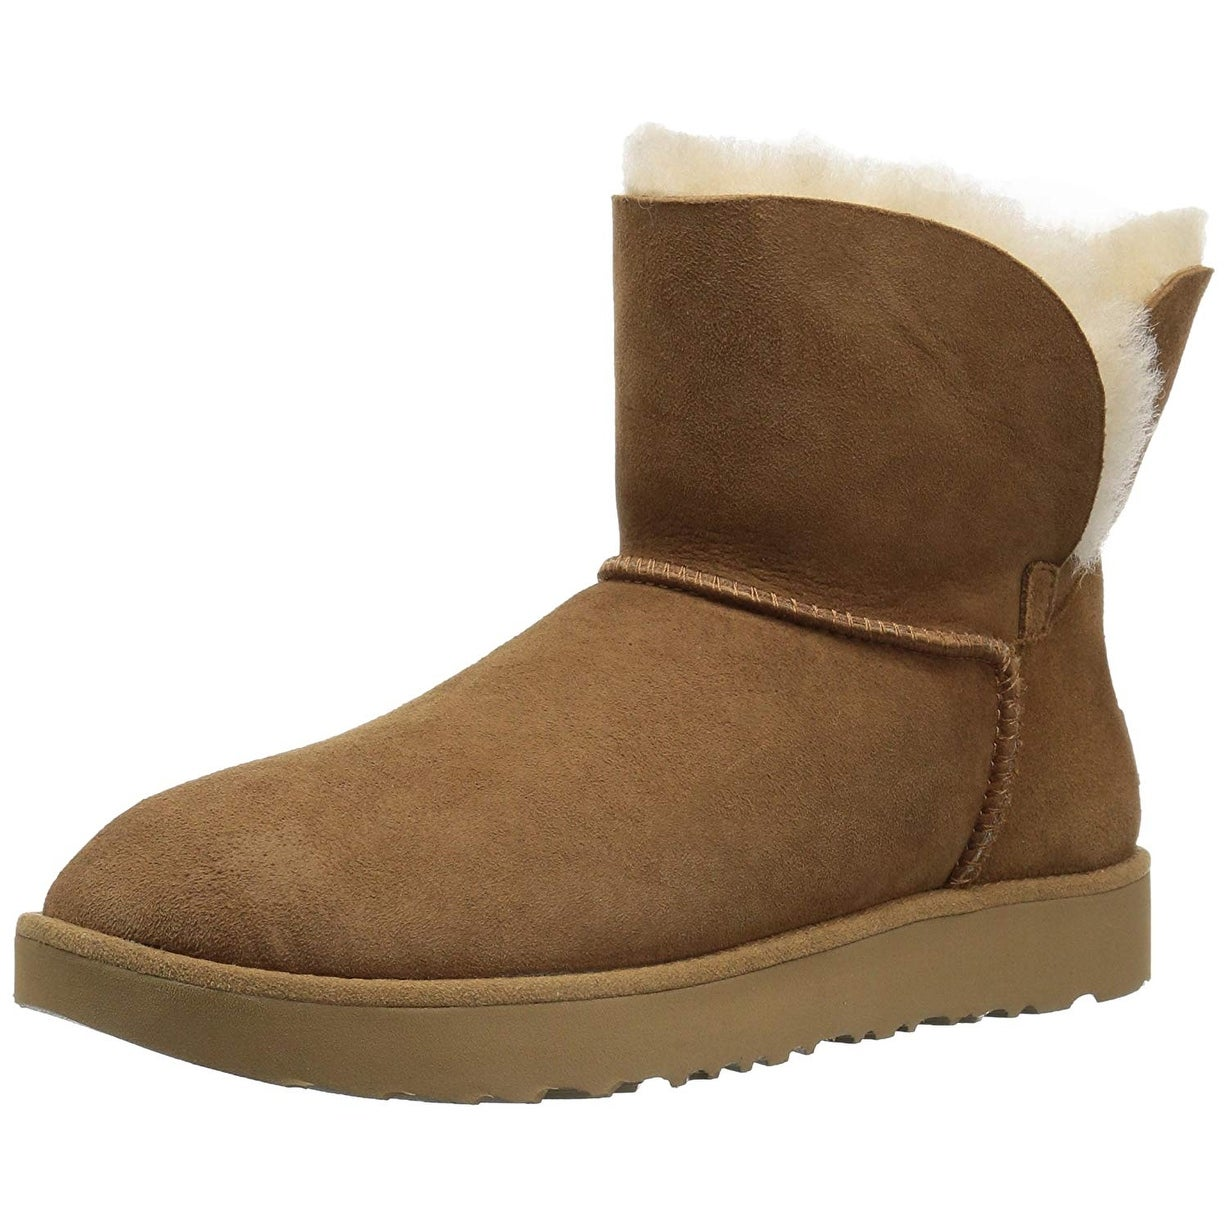 39a78f432cac0 Shop UGG Women s Classic Cuff Mini Winter Boot - Free Shipping Today ...